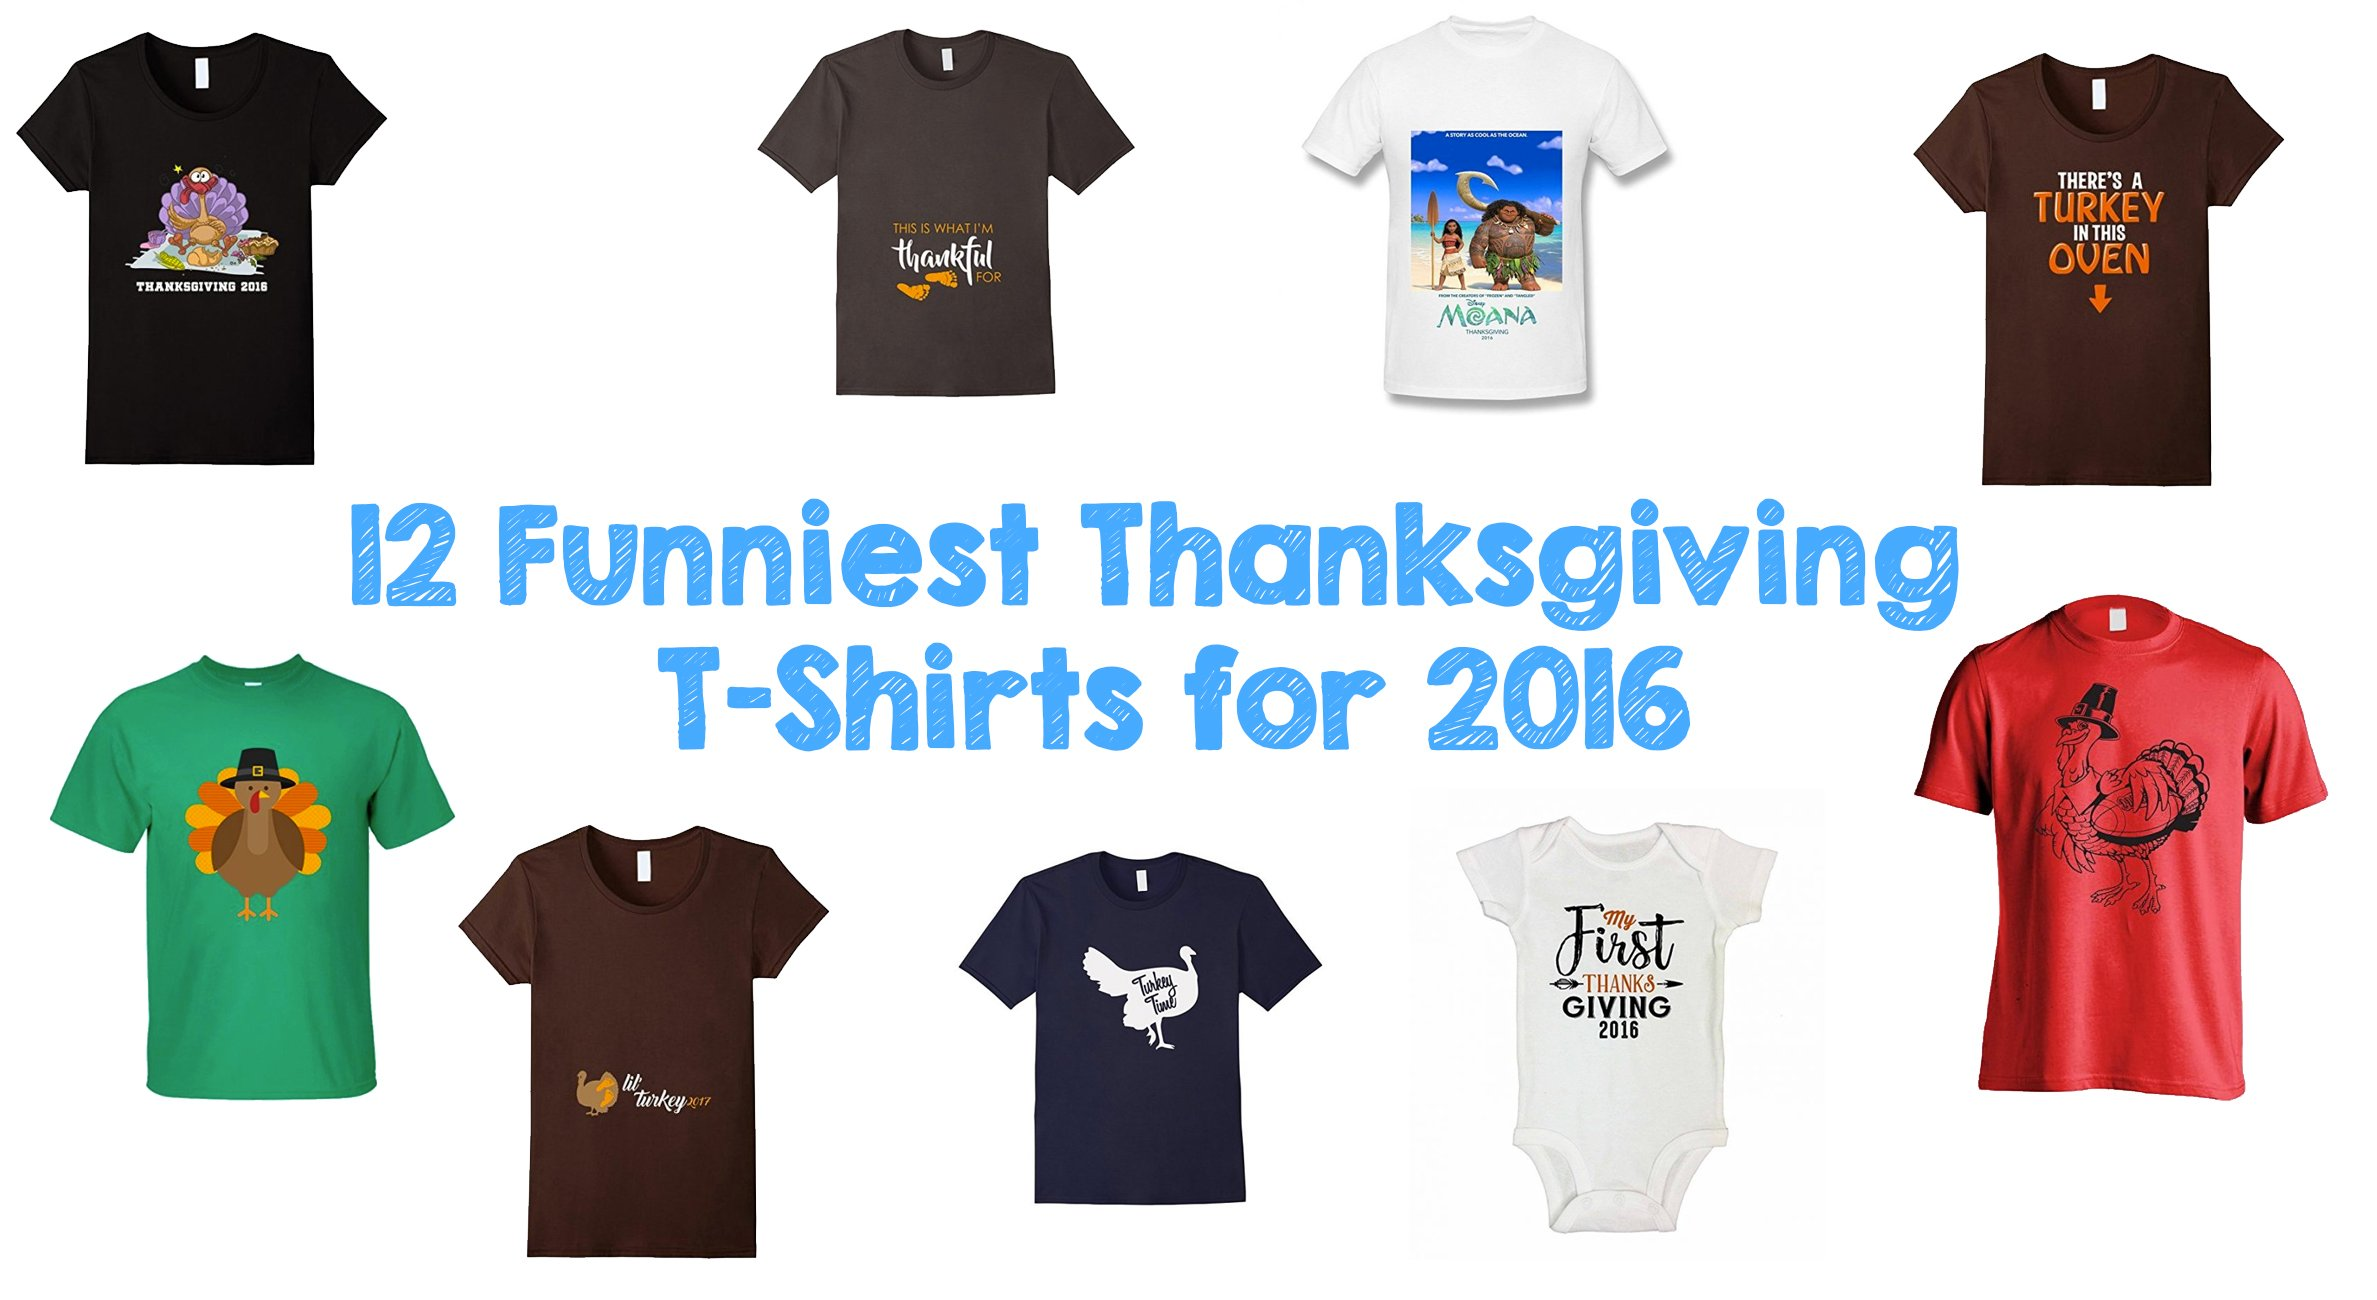 12 Funniest Thanksgiving T-Shirts for 2016